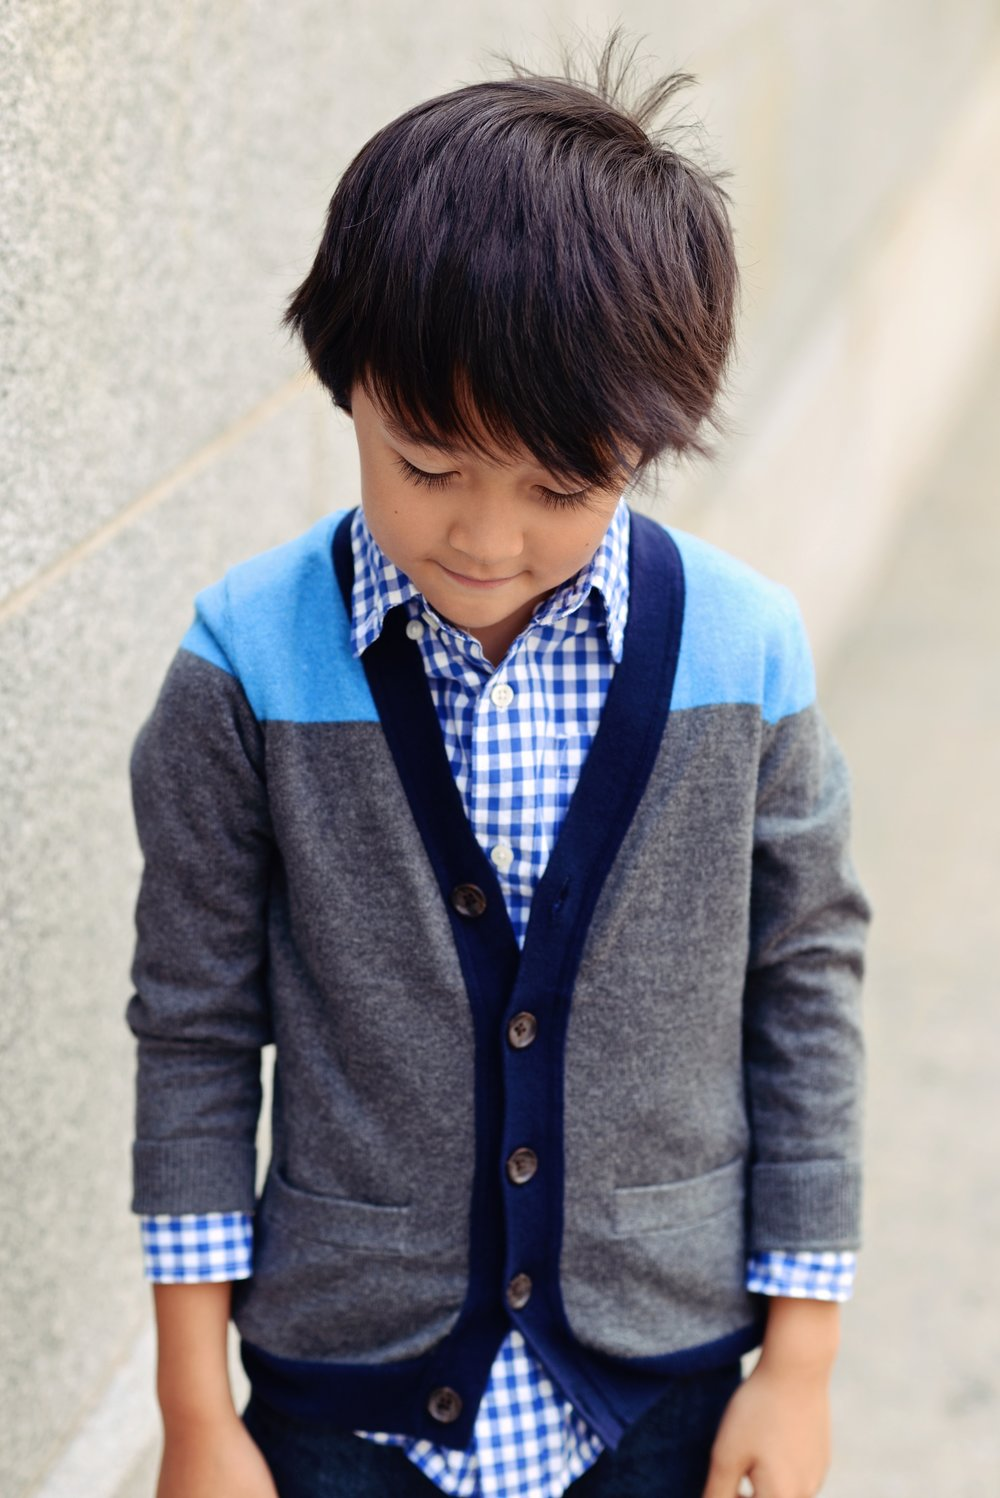 Enfant+Street+Style+by+Gina+Kim+Photography-52.jpeg